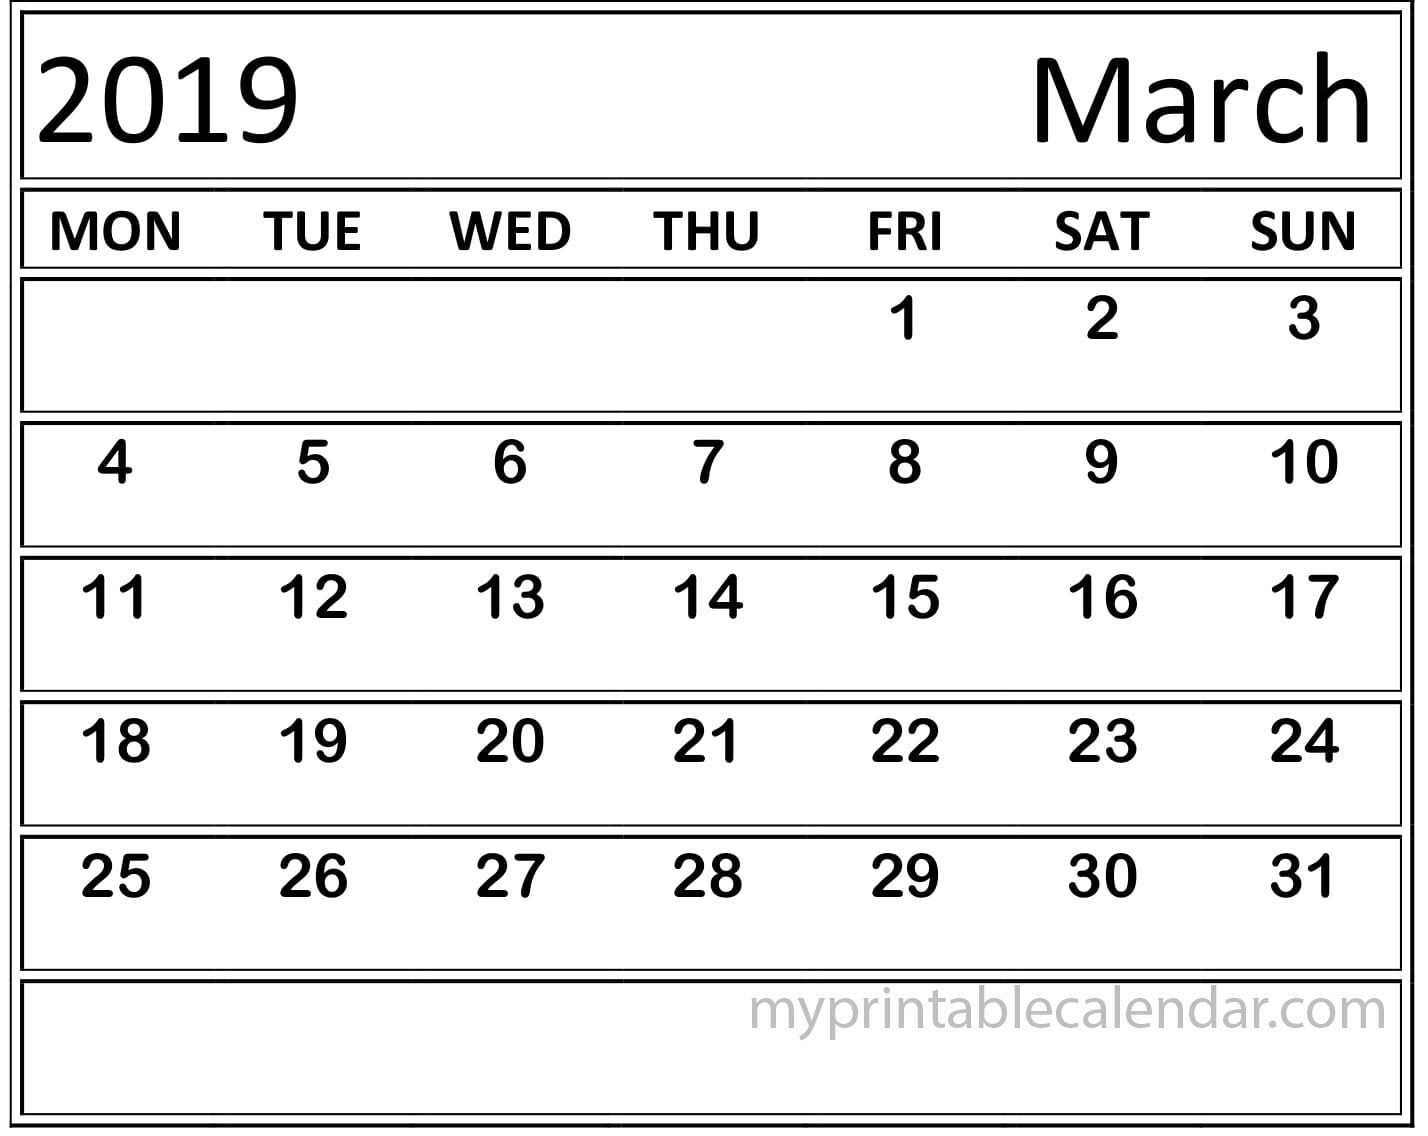 March 2019 Calendar Template With Lines | March 2019 for Calendar Template With Lines